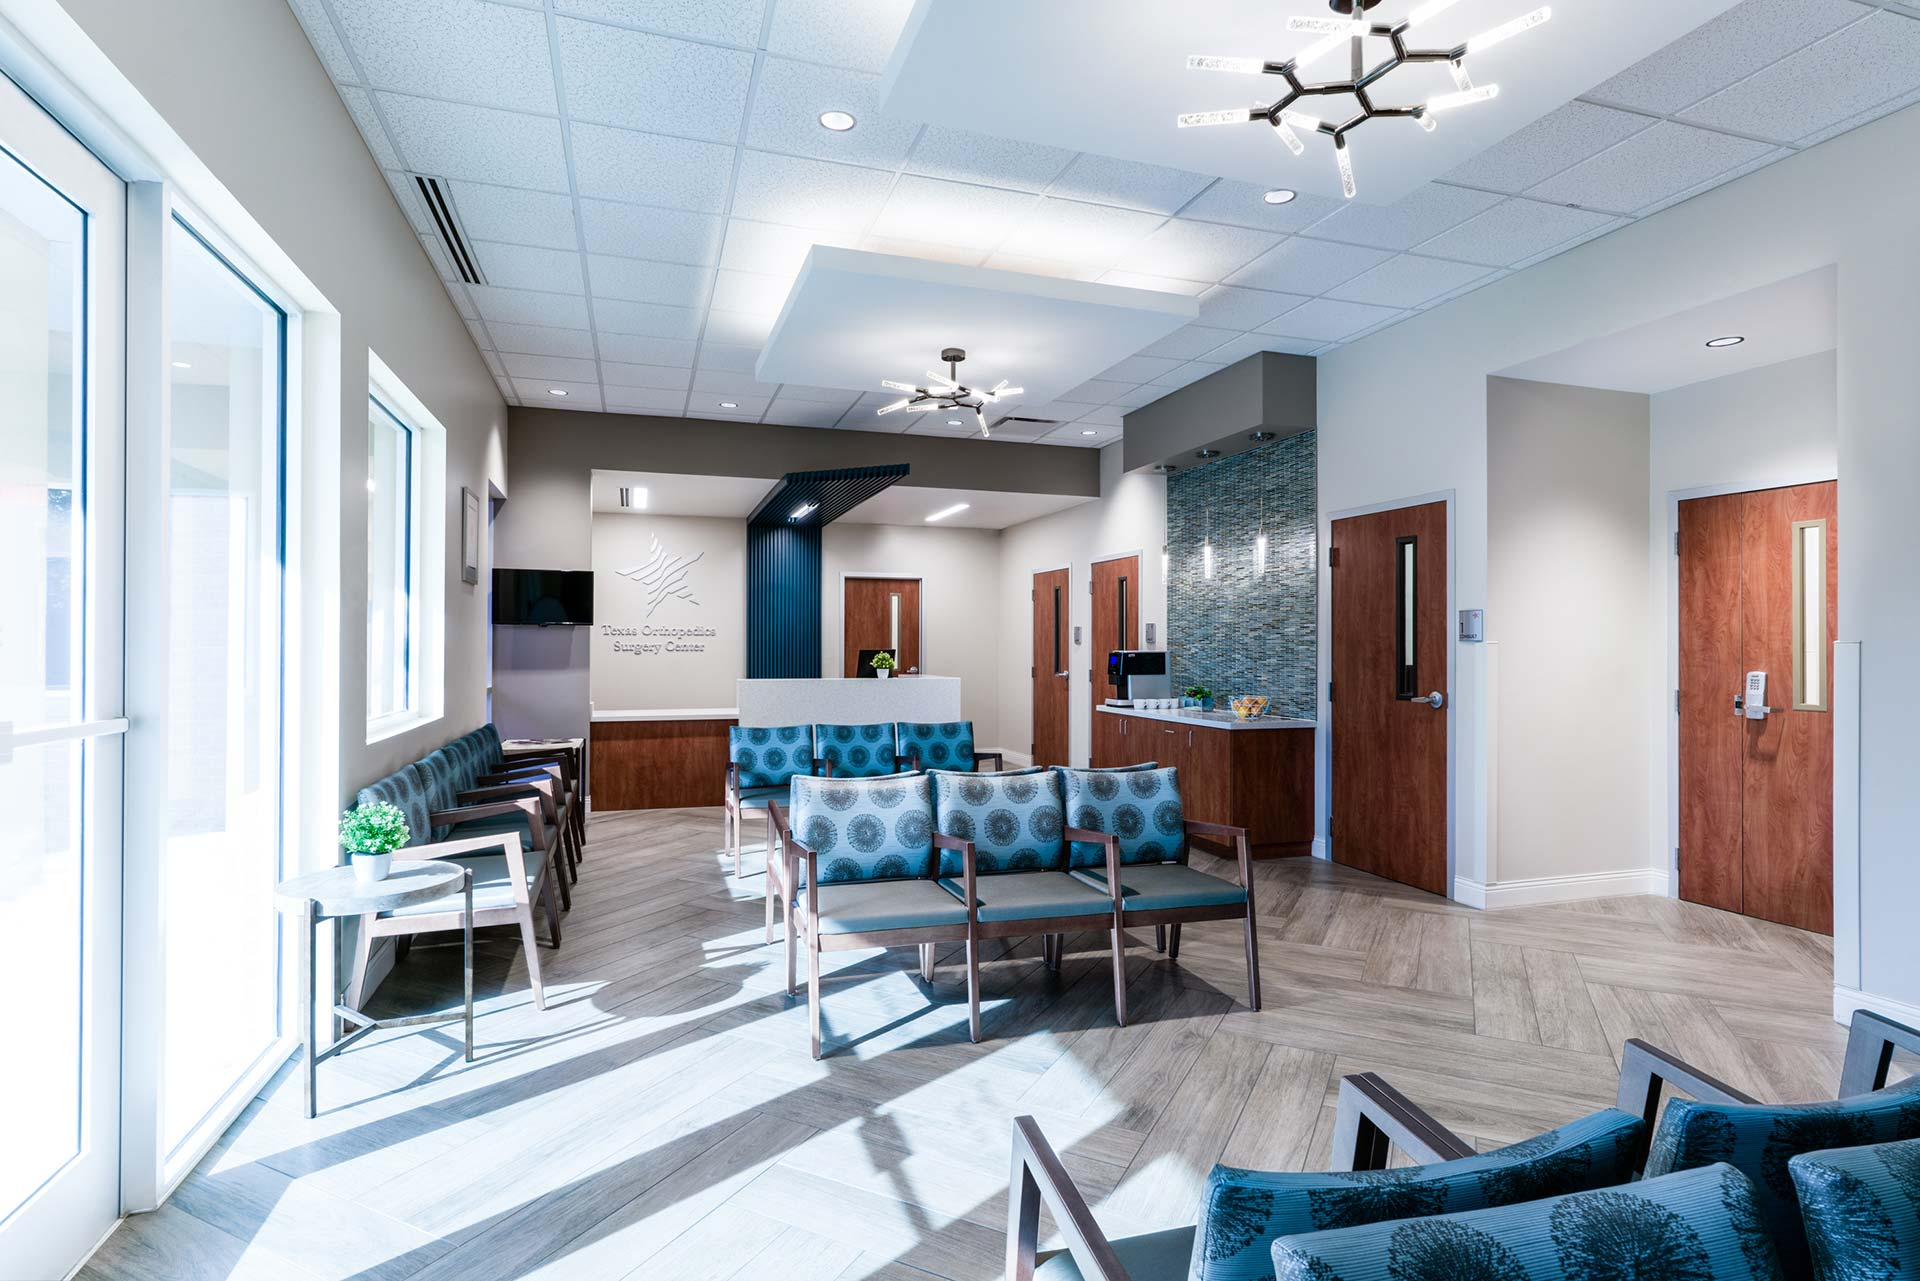 Real Estate Architecture Medical Office Space Photo